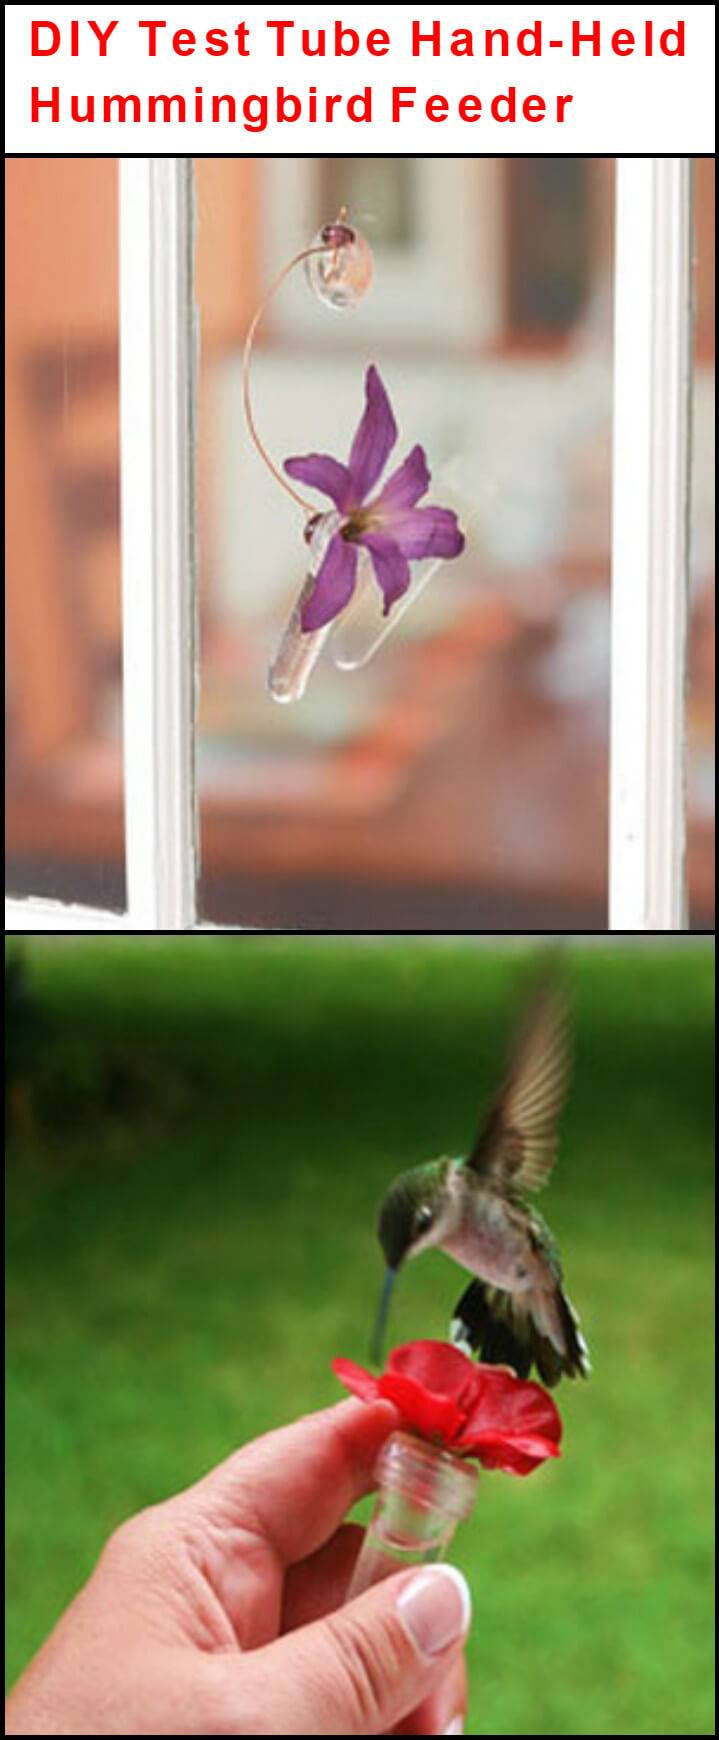 repurposed test tube hand-held hummingbird feeder